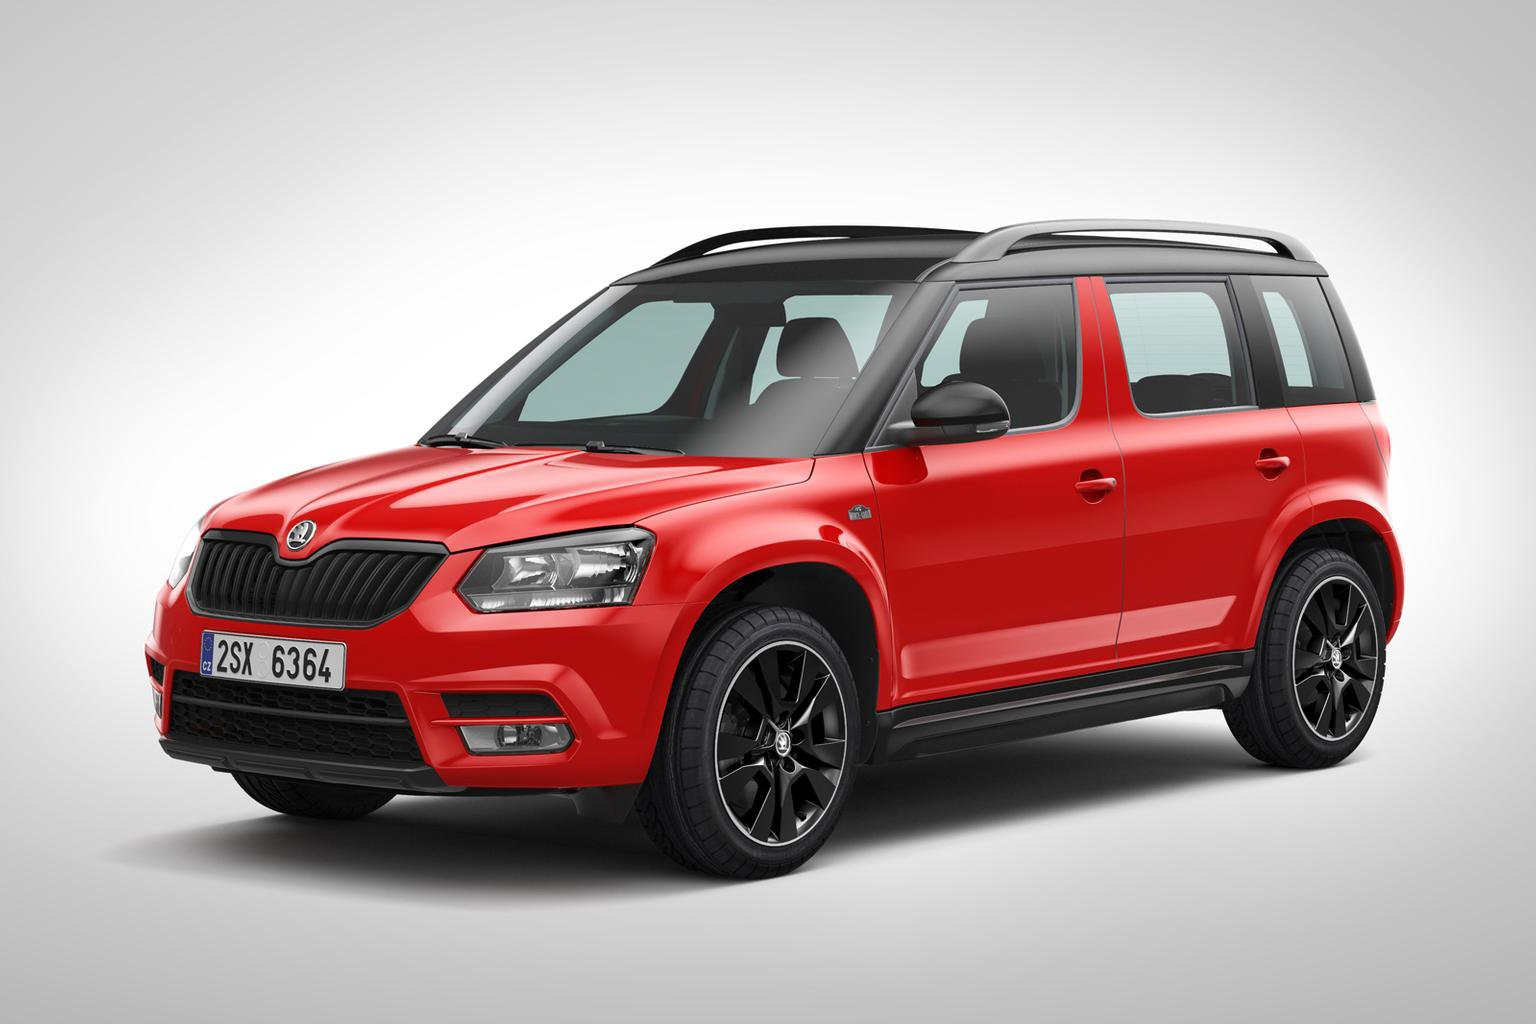 Skoda announces Yeti Monte Carlo special edition | What Car?